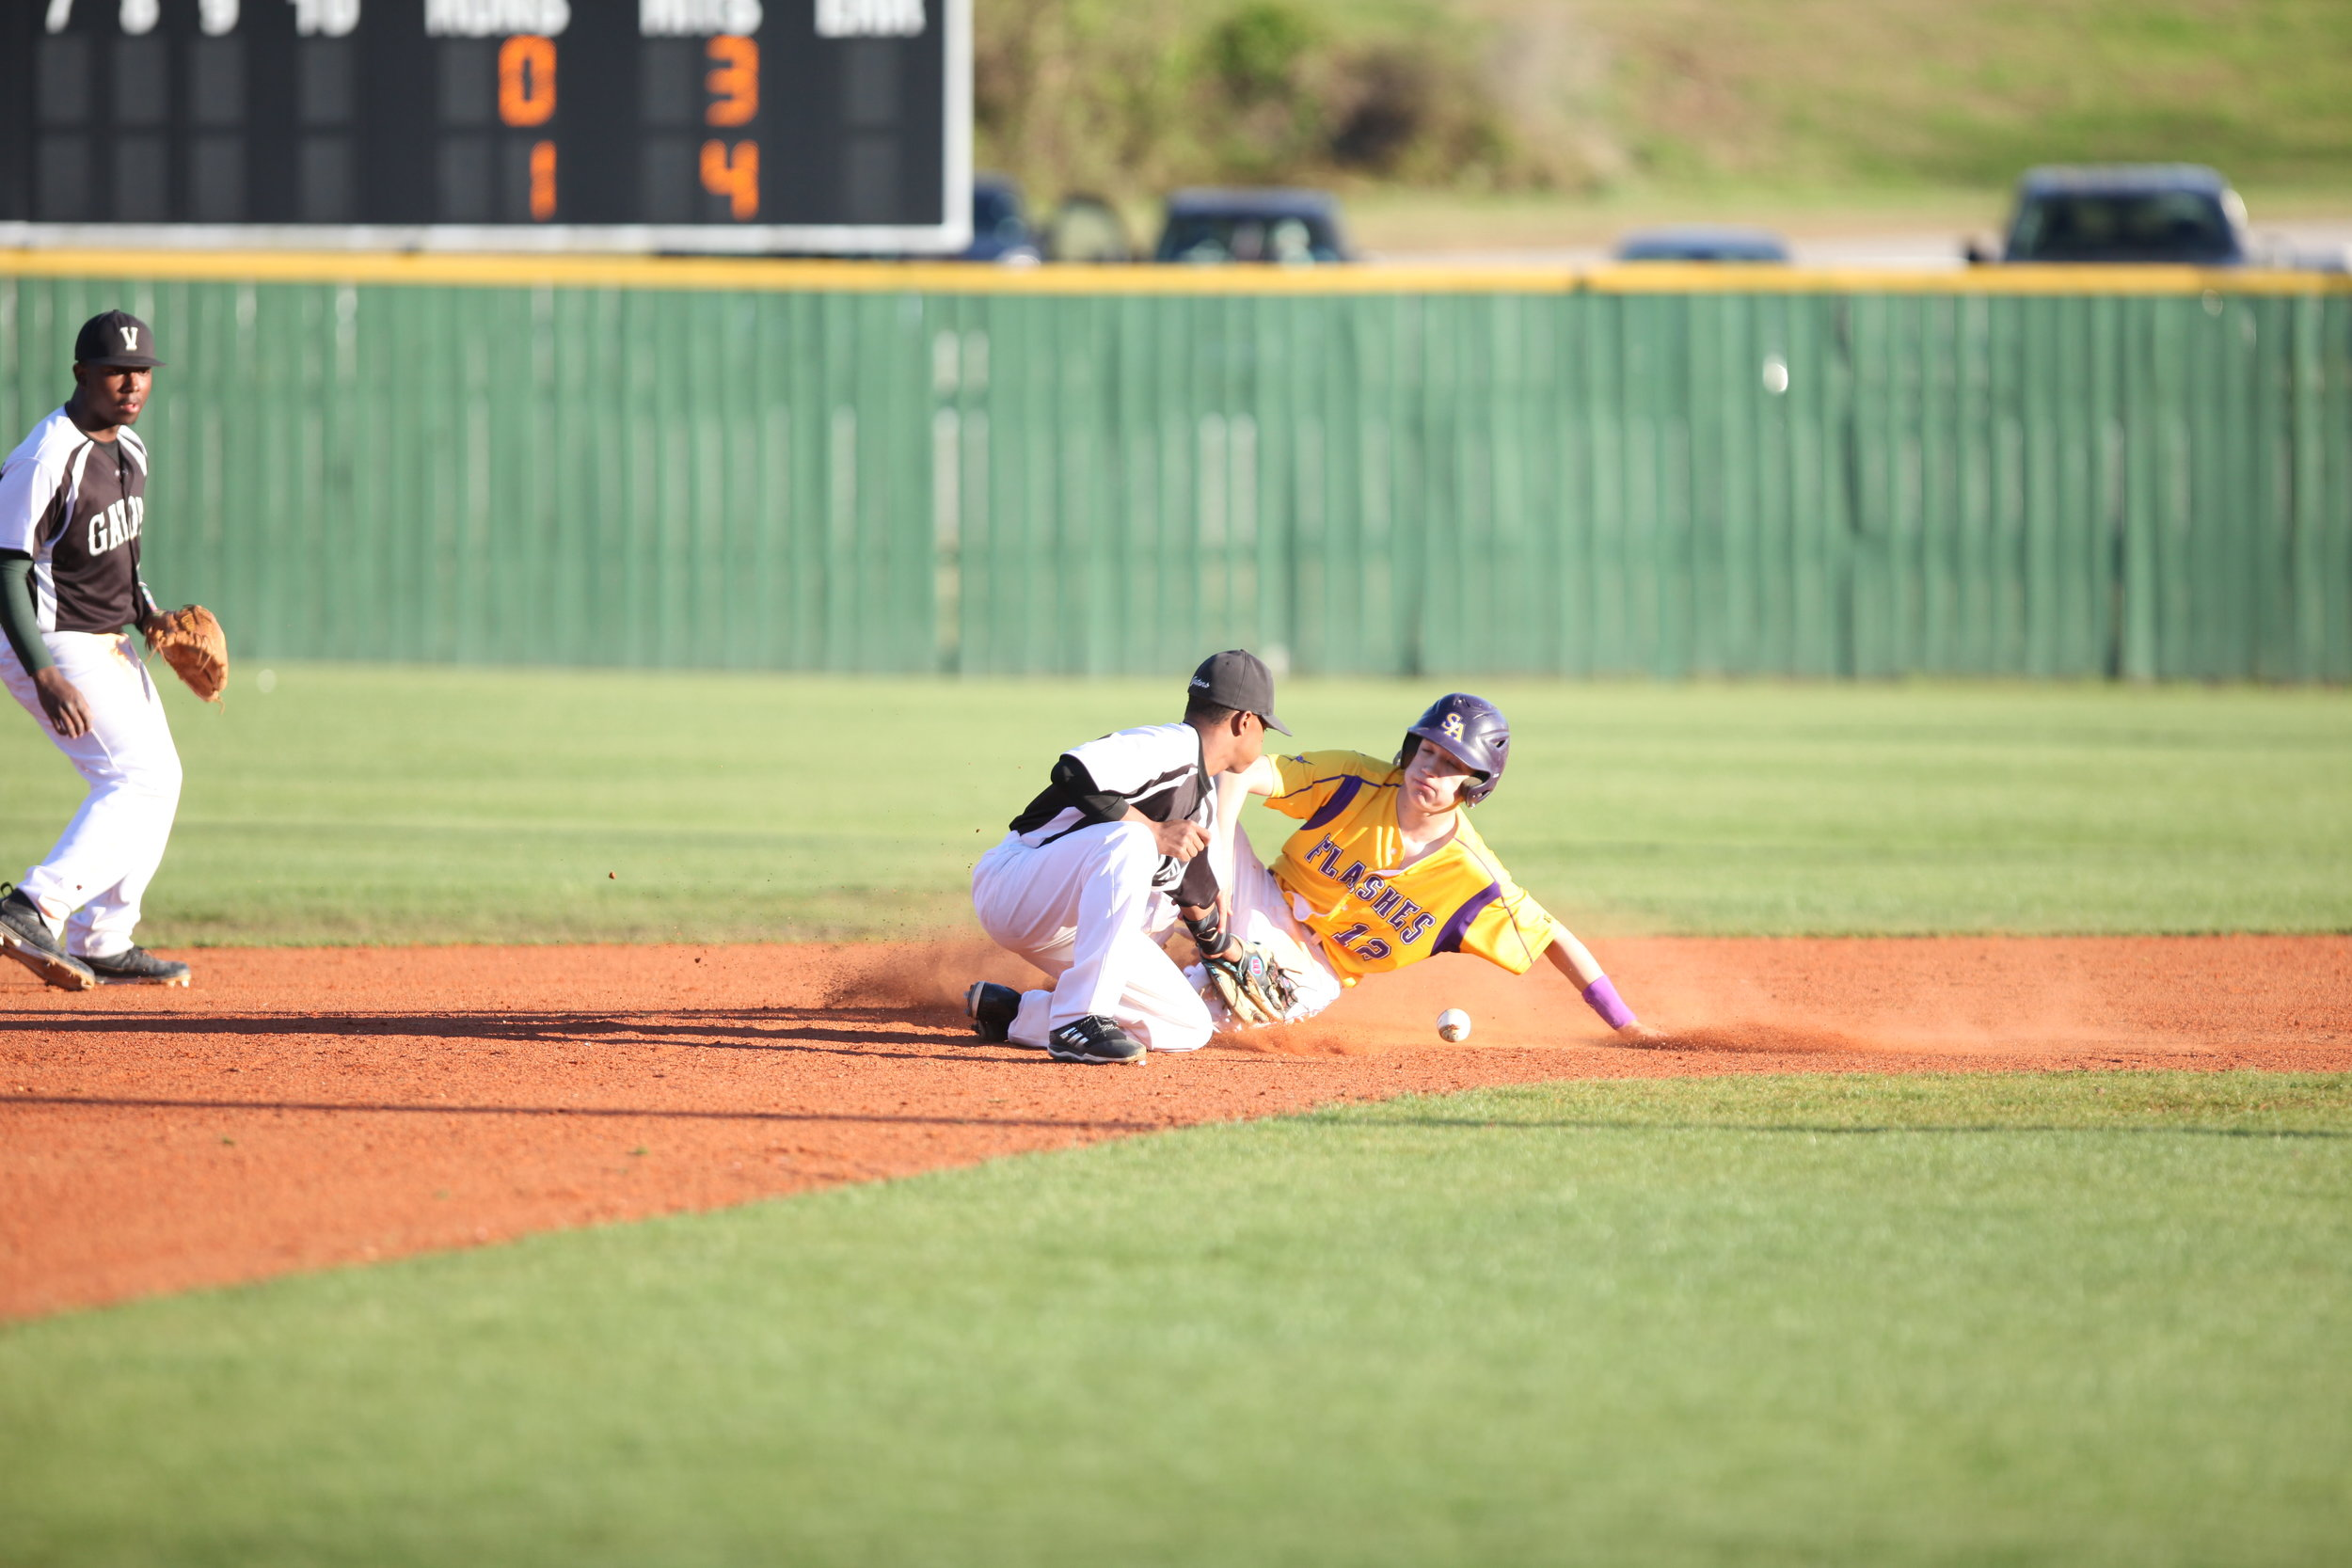 St. Aloysius' Kieran Theriot (12) slides into 2nd base safely as Vicksburg High's Ryan Thompson (11) drops the ball  during the game at Bazinsky Field Wednesday (Courtland Wells/The Vicksburg Post)